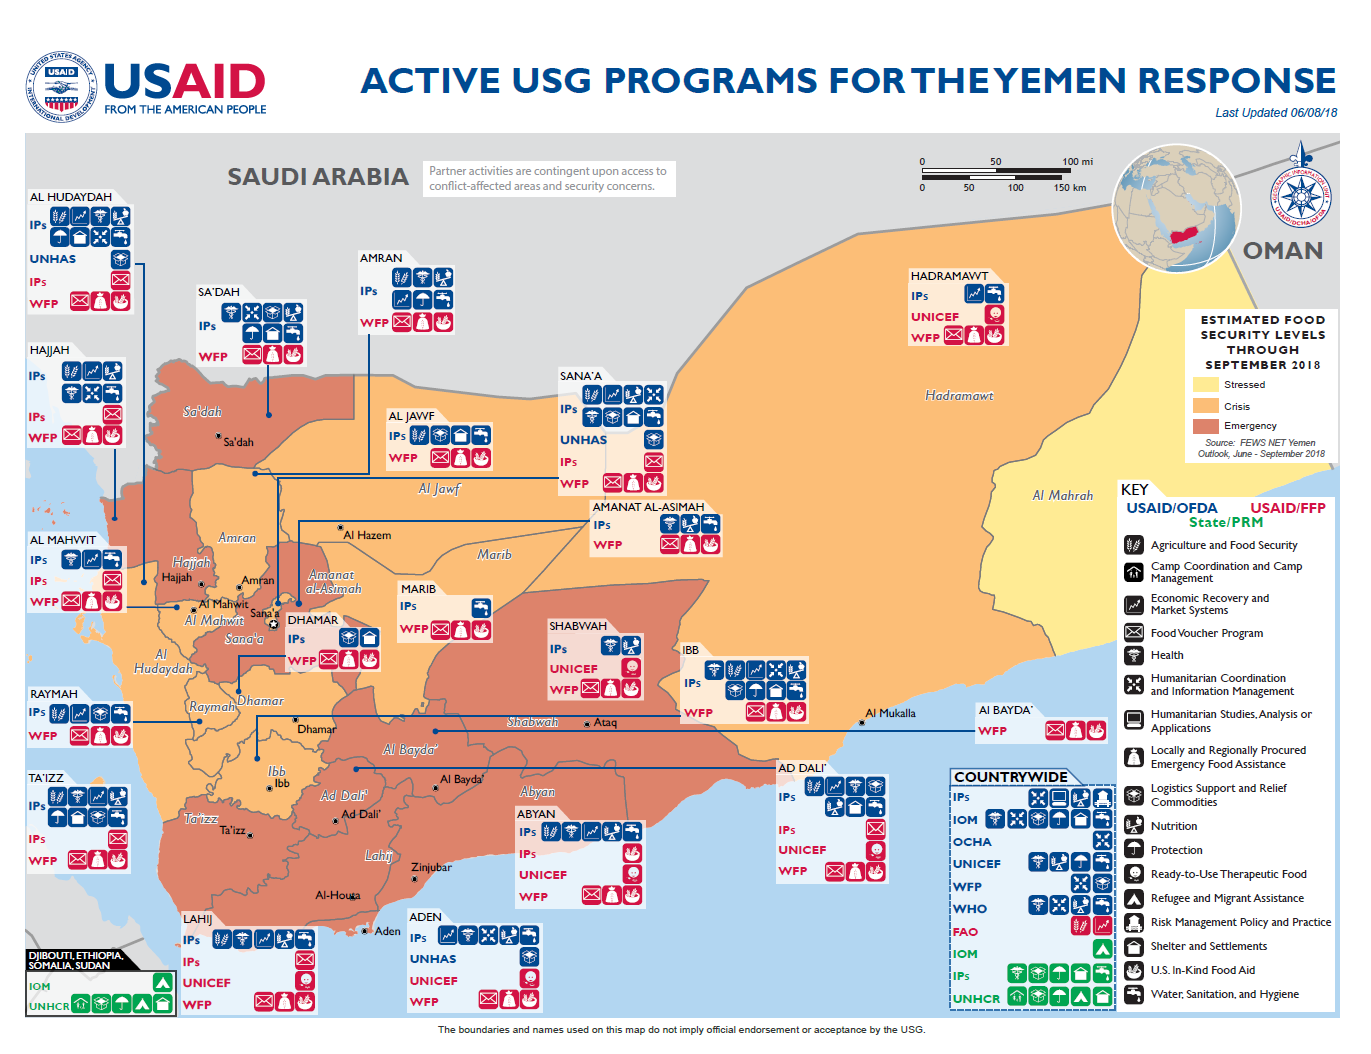 8 JUNE 2018: ACTIVE USG PROGRAMS FOR THE YEMEN RESPONSE